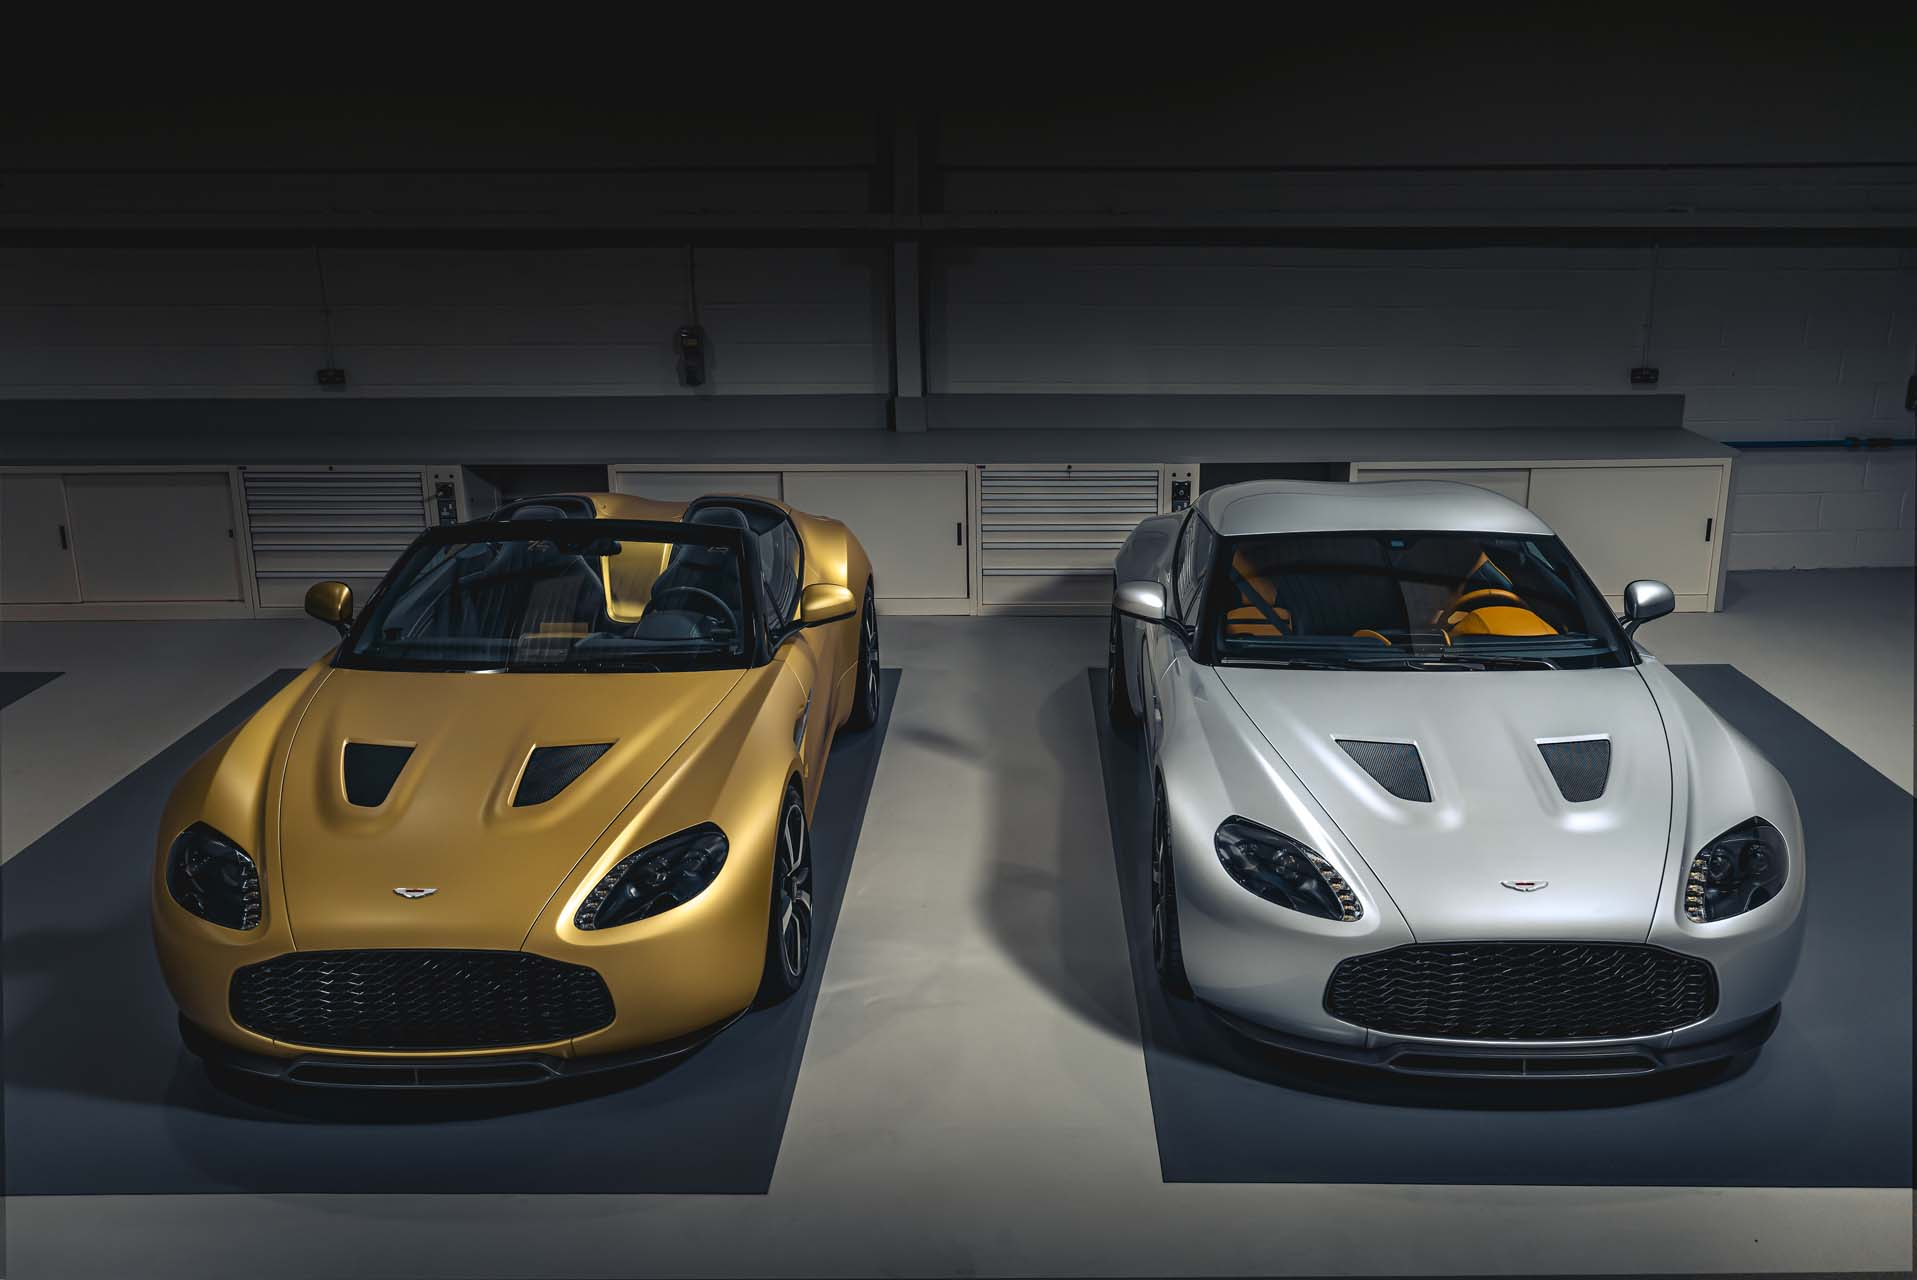 Aston Martin V12 Vantage Heritage Twins by R-Reforged